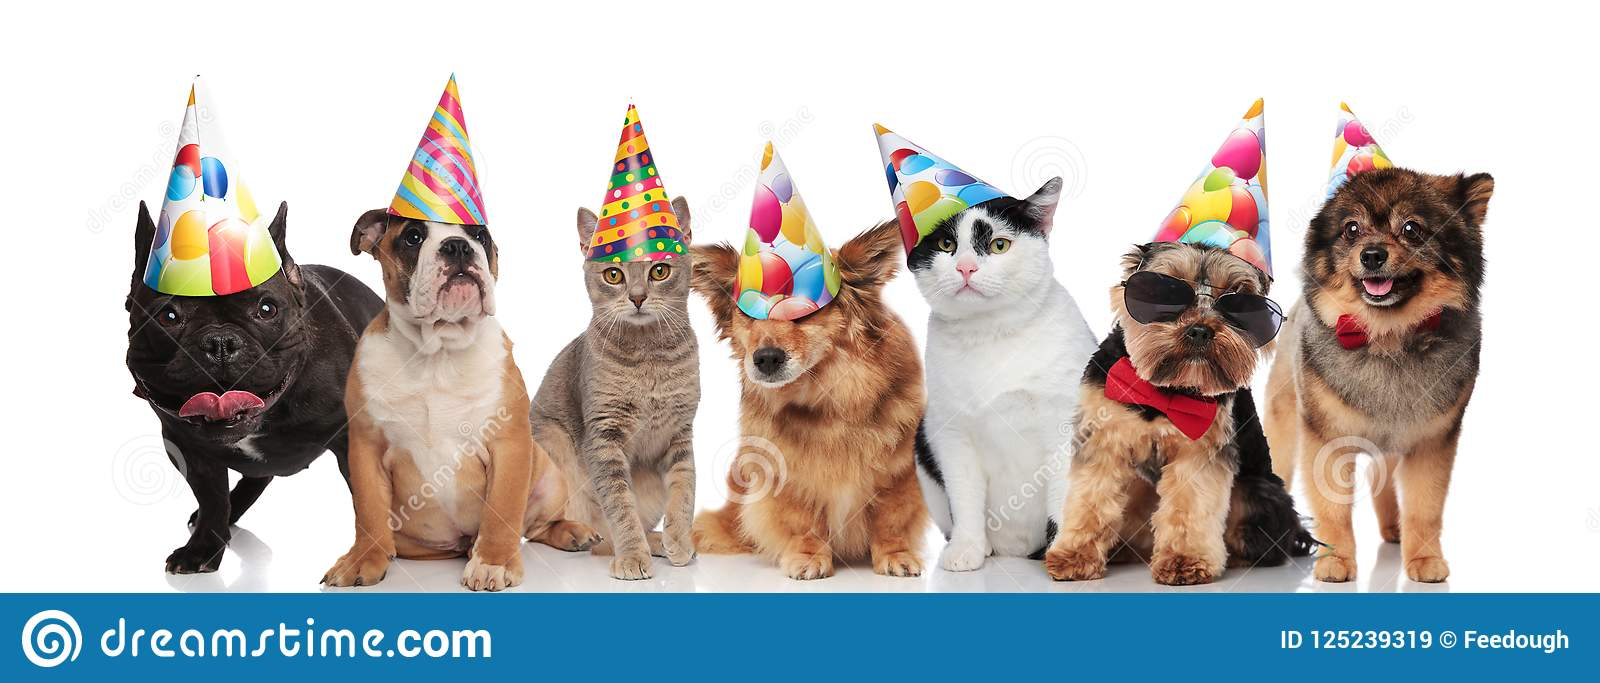 Team Of Seven Happy Cats And Dogs Wearing Colorful Birthday Hats While Standing Sitting Lying On White Background